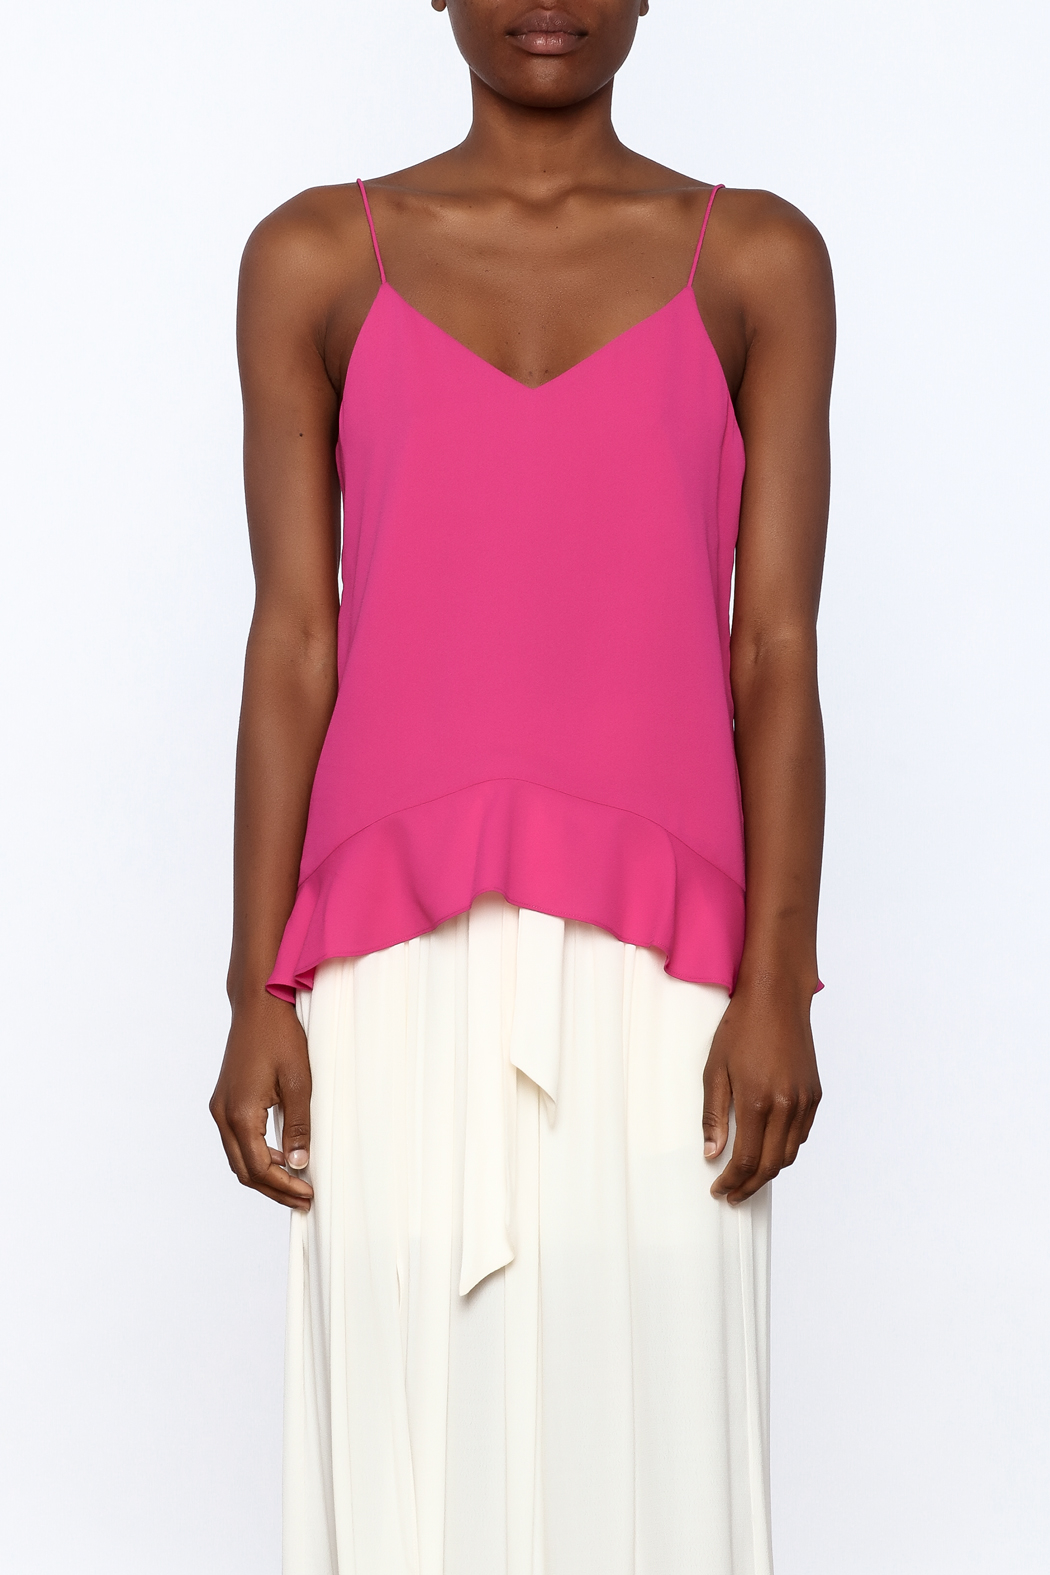 Cooper & Ella Hot Pink Sleeveless Top - Side Cropped Image